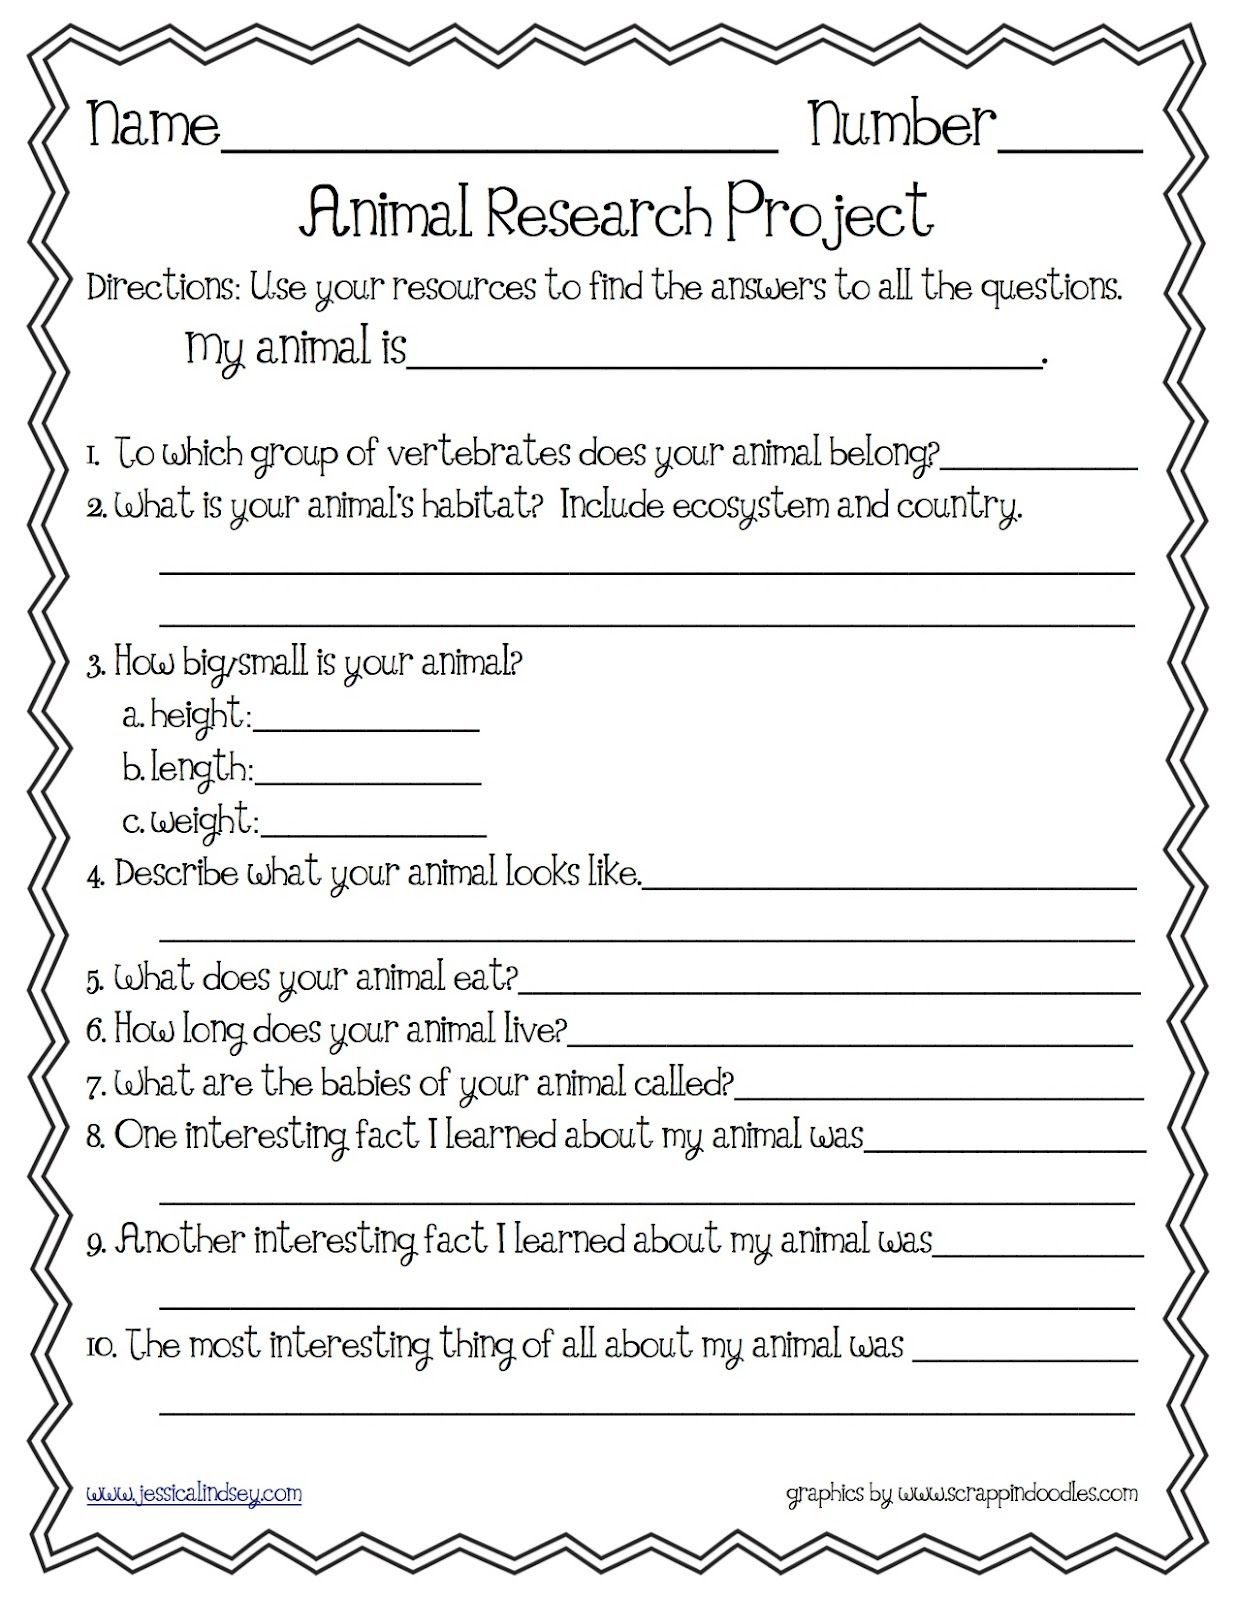 011 Research Paper Animal Striking Topics Cruelty Farm Ideas Full